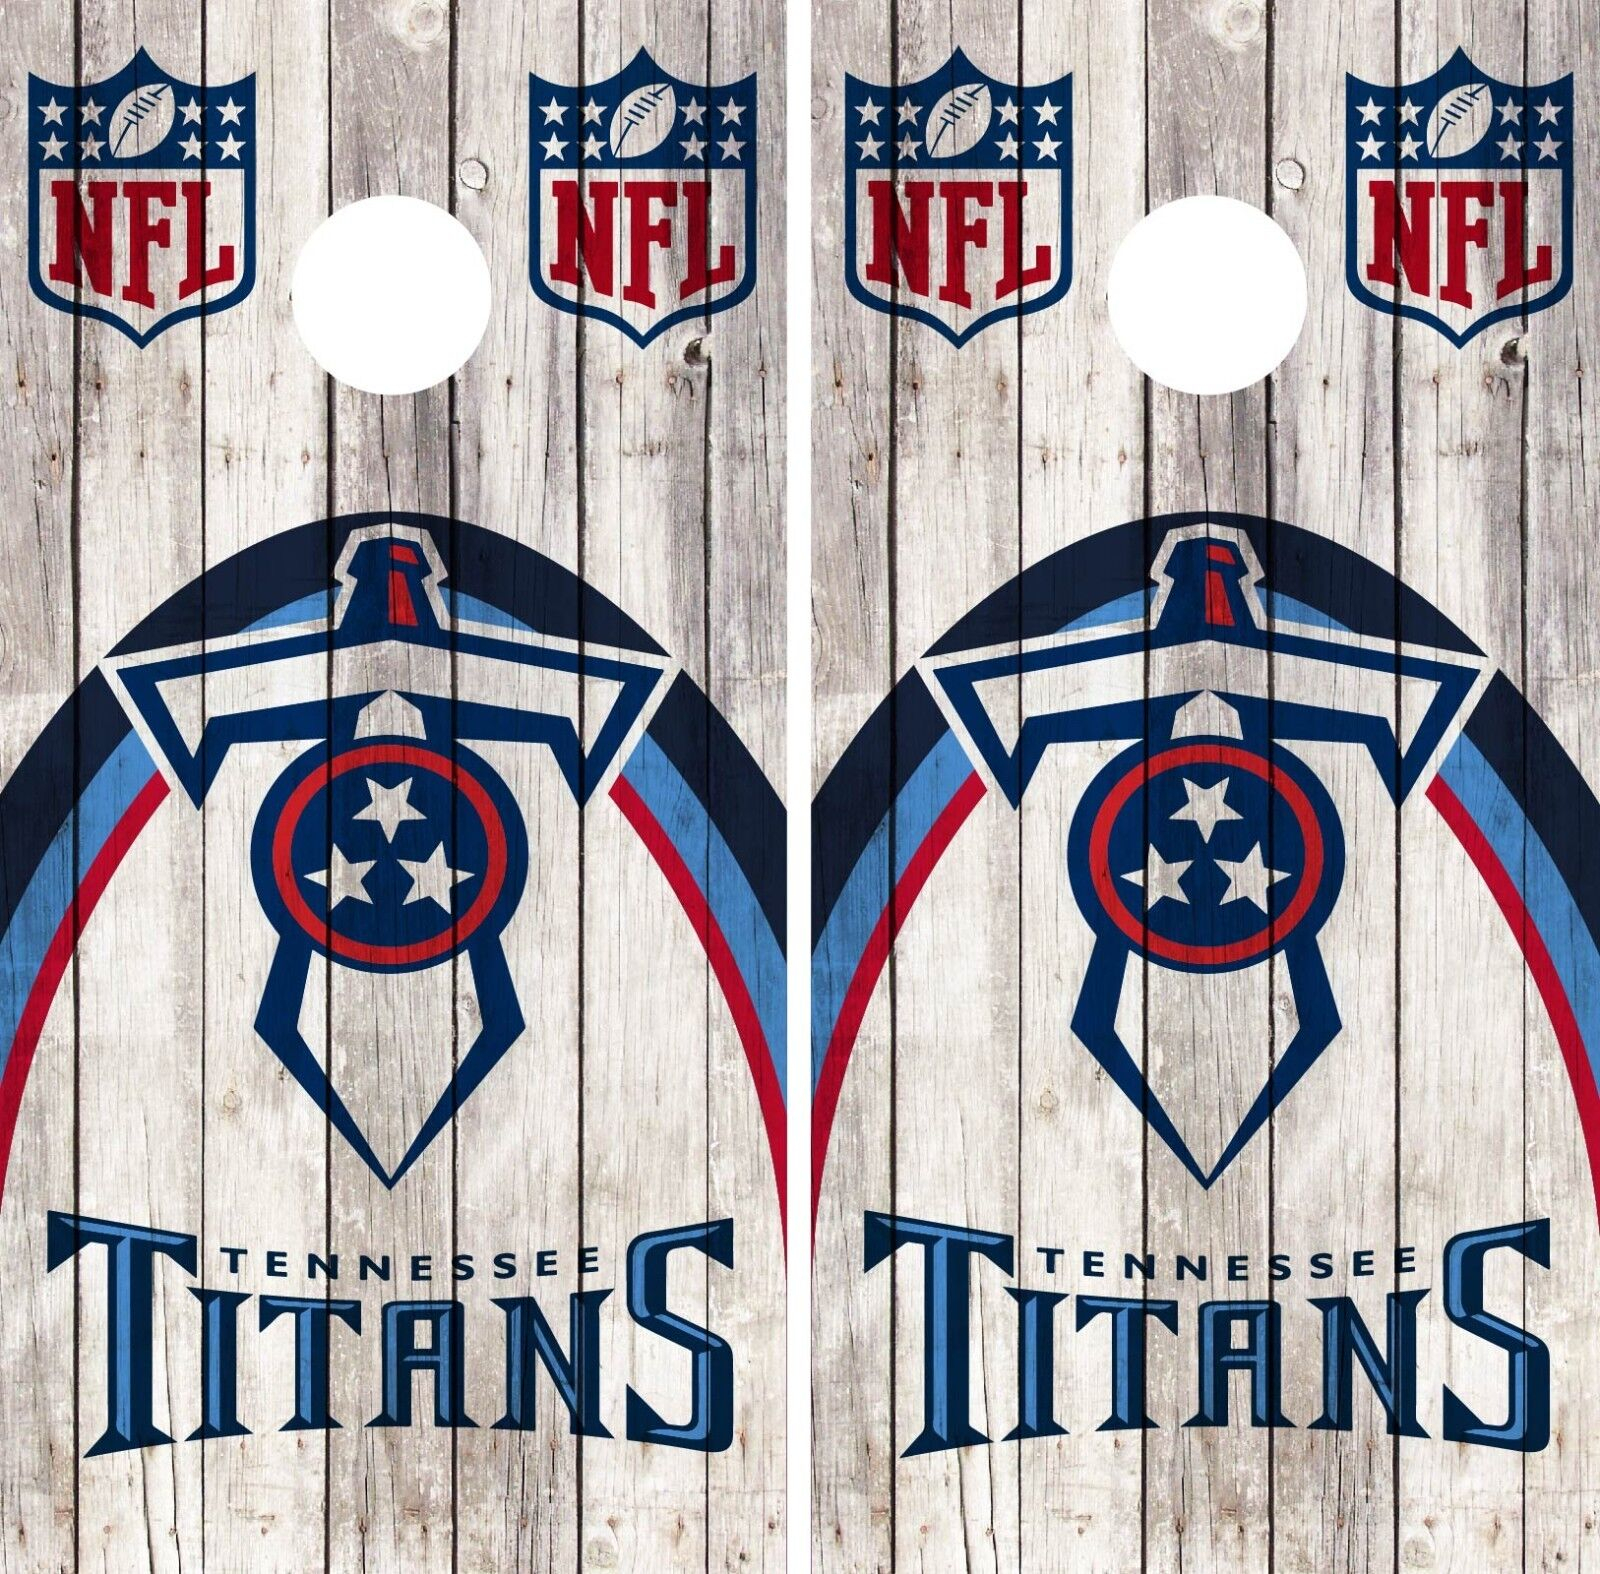 Tennessee Titans Cornhole Wrap NFL Wood Skin Game Board  Set Vinyl Art CO147  select from the newest brands like